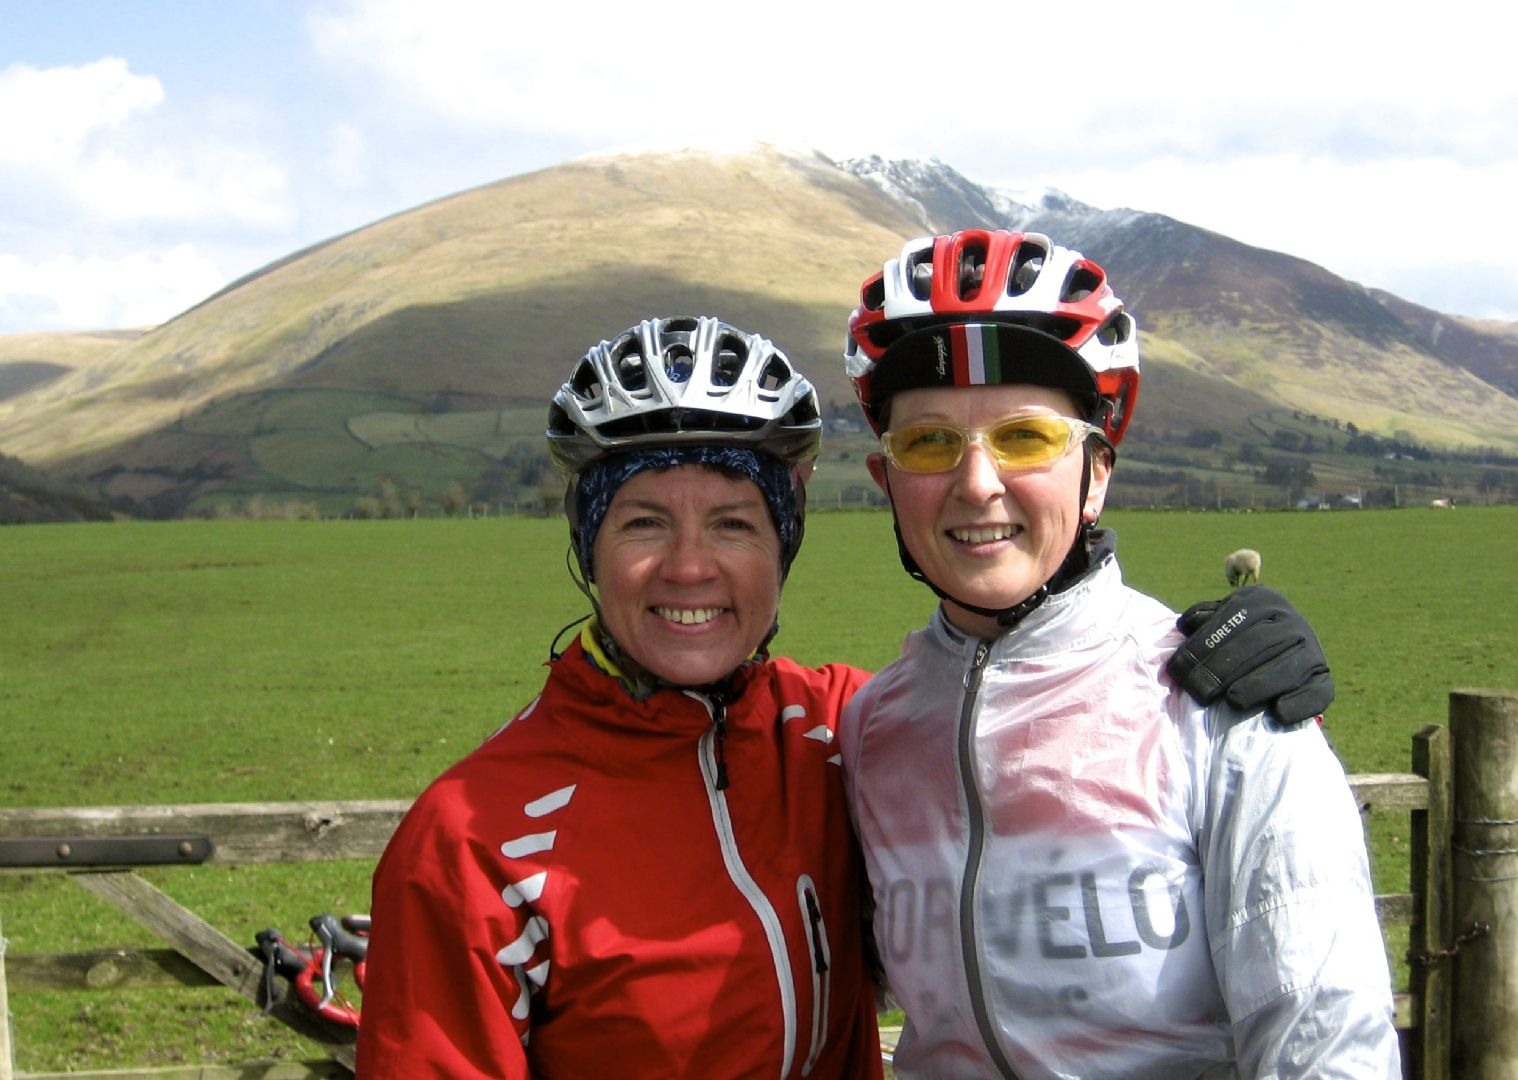 _Staff.178.9767.jpg - UK - Lake District Introductory - Guided Road Cycling Weekend - Road Cycling